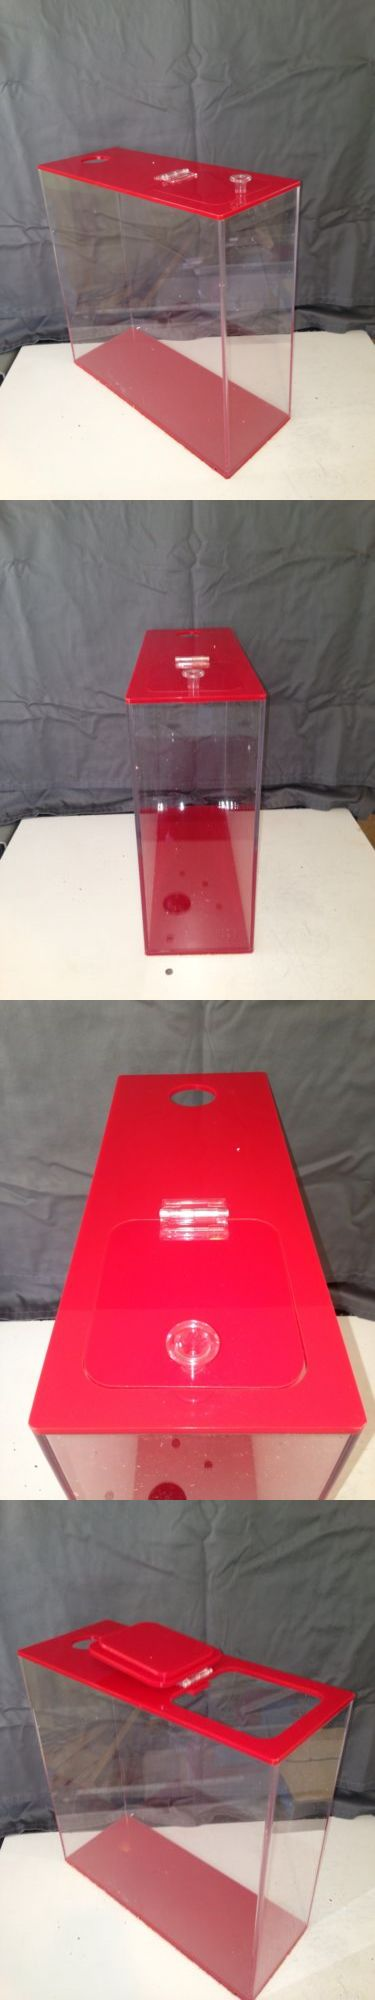 Other Fish and Aquarium Supplies 8444: Acrylic Aquarium Auto Topoff (Ato) Reef Reservoir/Container BUY IT NOW ONLY: $99.0